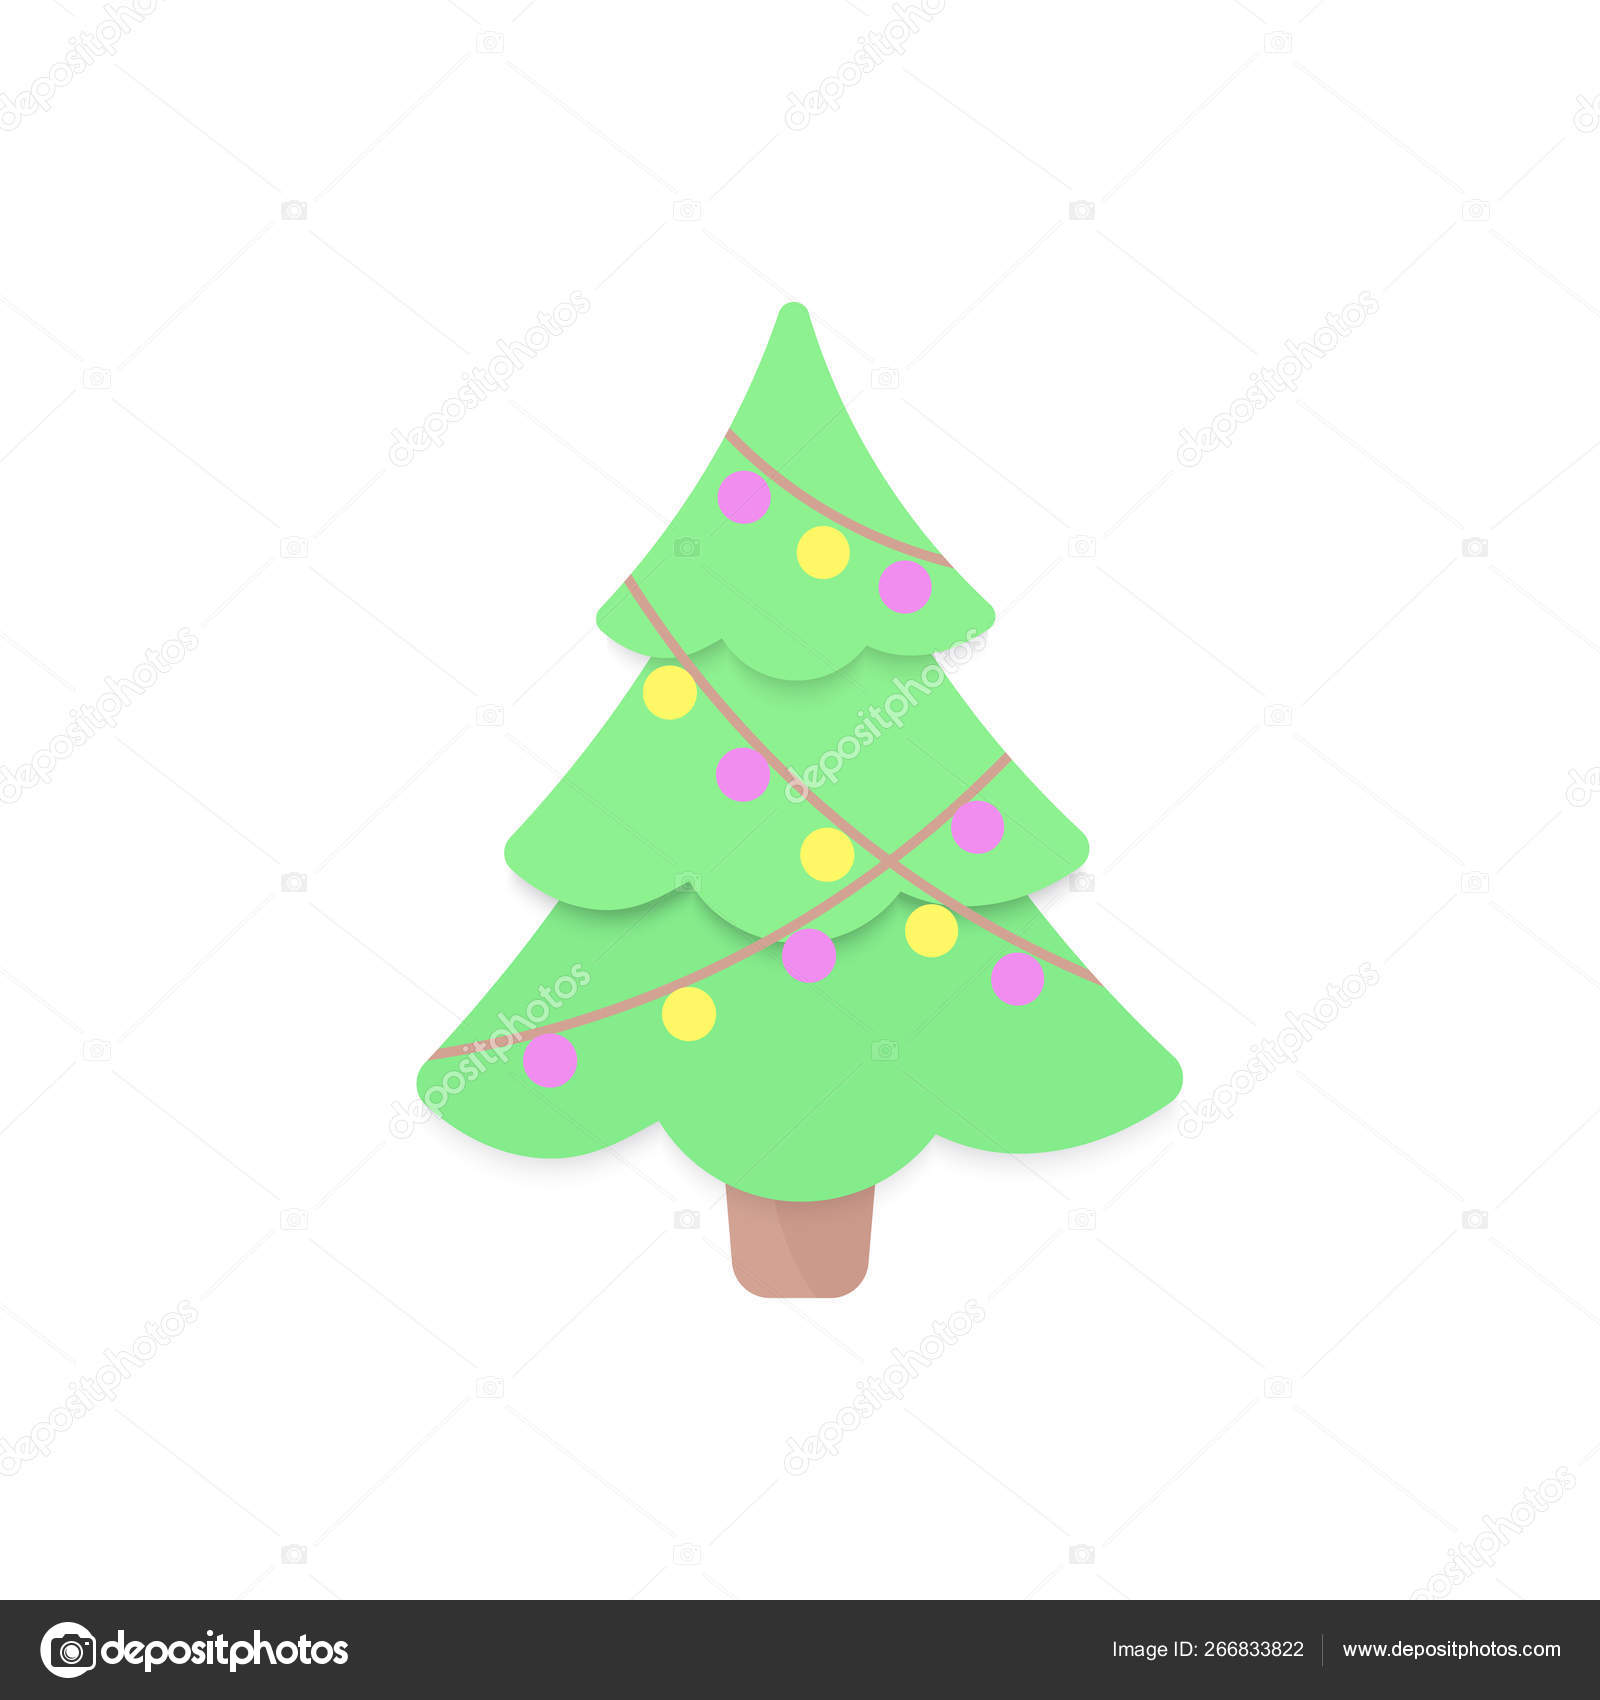 Cartoon Christmas Tree Paper Cut New Year Xmas Tree Scrapbook Sign For Holiday Card Seasonal Landscape Web Banner Poster Branding Cover Stock Vector C Juls Dumanska Gmail Com 266833822 However, every year at least one new cartoon should be added into the list of kids' favourite animated movies. cartoon christmas tree paper cut new year xmas tree scrapbook sign for holiday card seasonal landscape web banner poster branding cover stock vector c juls dumanska gmail com 266833822